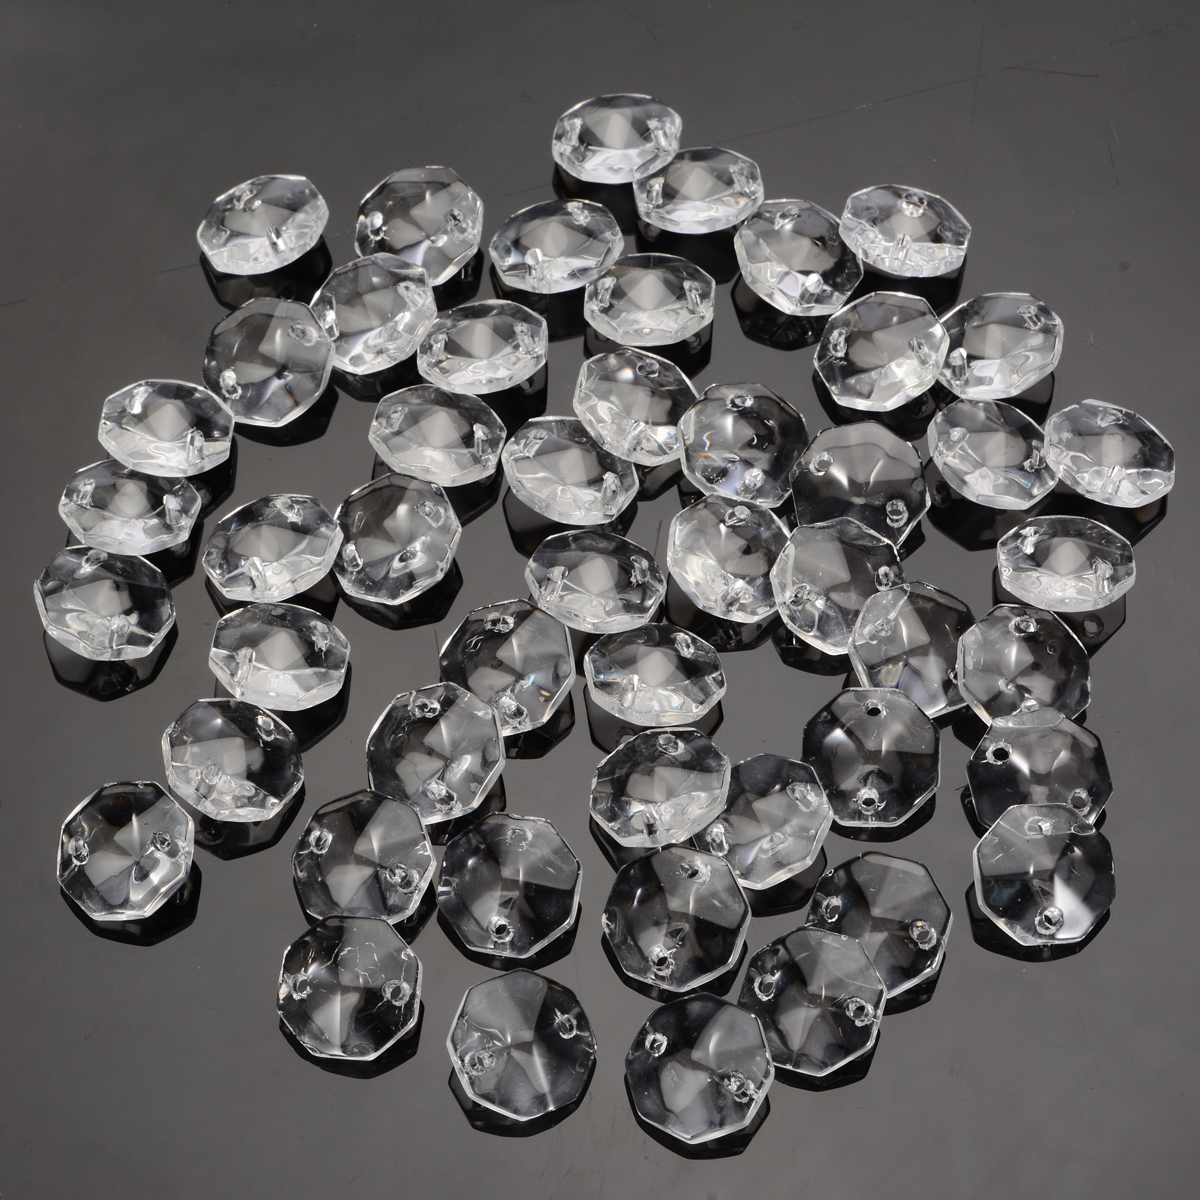 50Pcs 14mm Glass Crystal Prisms Clear Octagonal Beads Glass Pendant Chandeliers For Lamp Light Decorations